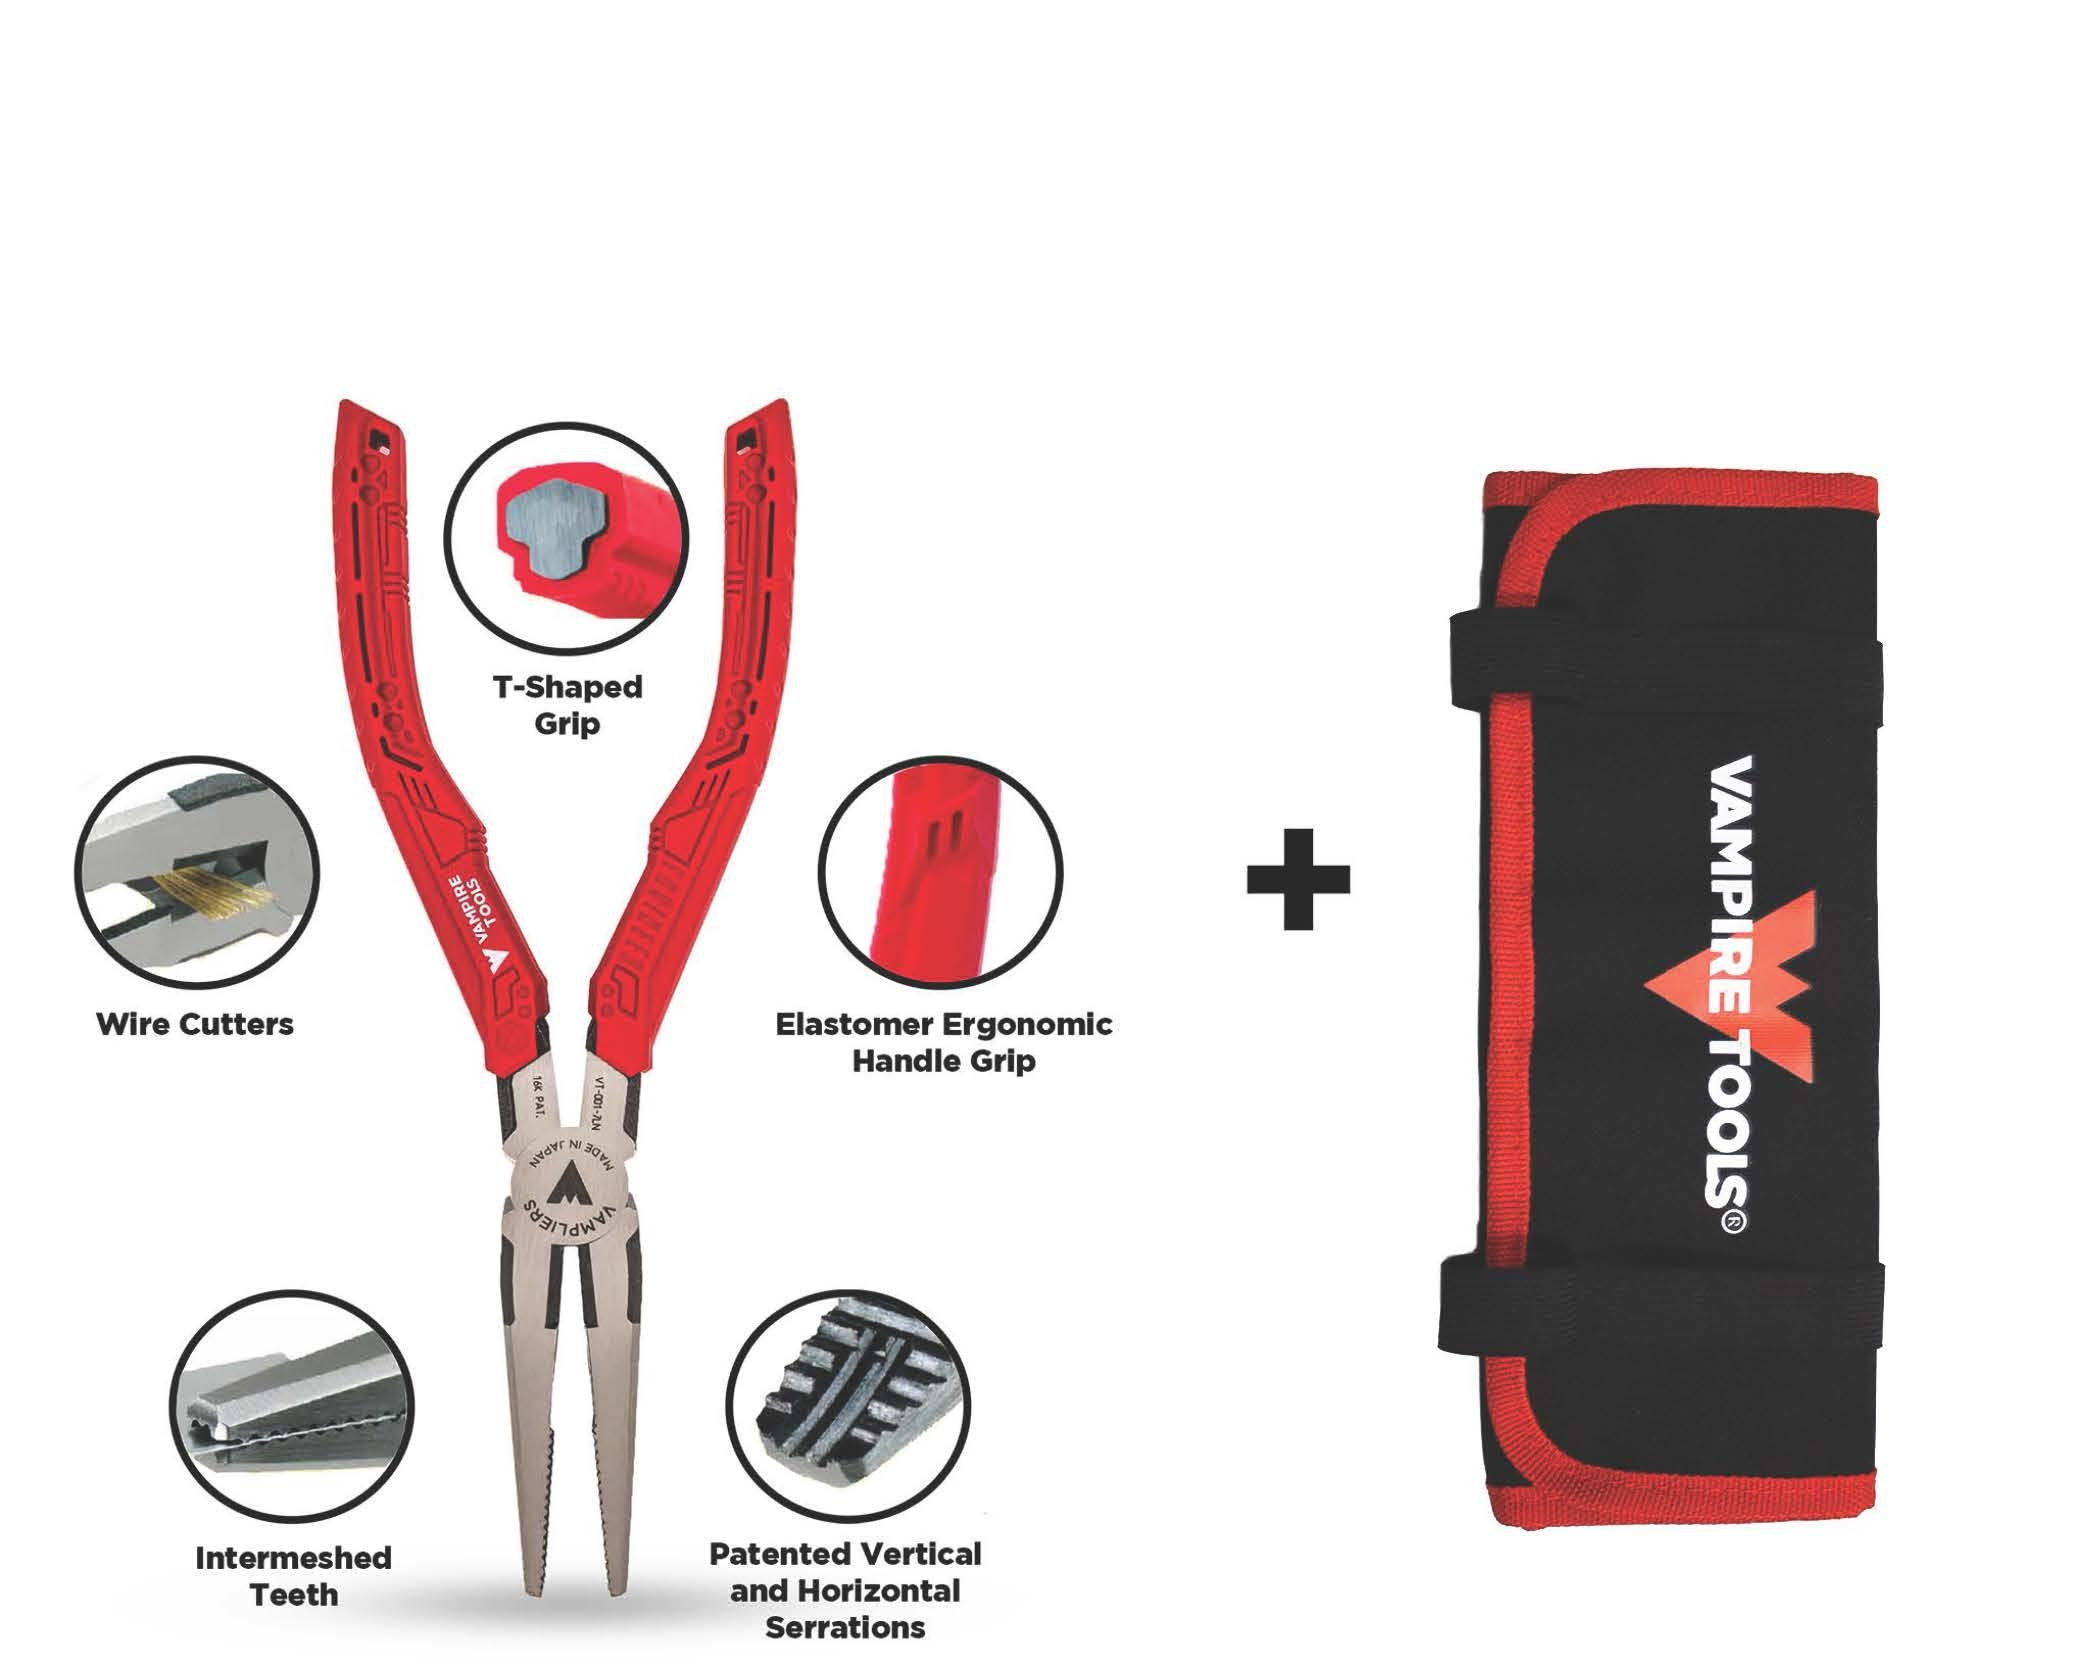 VAMPLIERS World's Best Pliers! Long Nose 7.5'' Specialty Screw Extraction Pliers + Free Vampire Tools Pouch Black Friday Cyber Monday Week Deal, Makes the Best Gift (Pliers W/FREE Pouch) by VAMPIRE PROFESSIONAL TOOLS